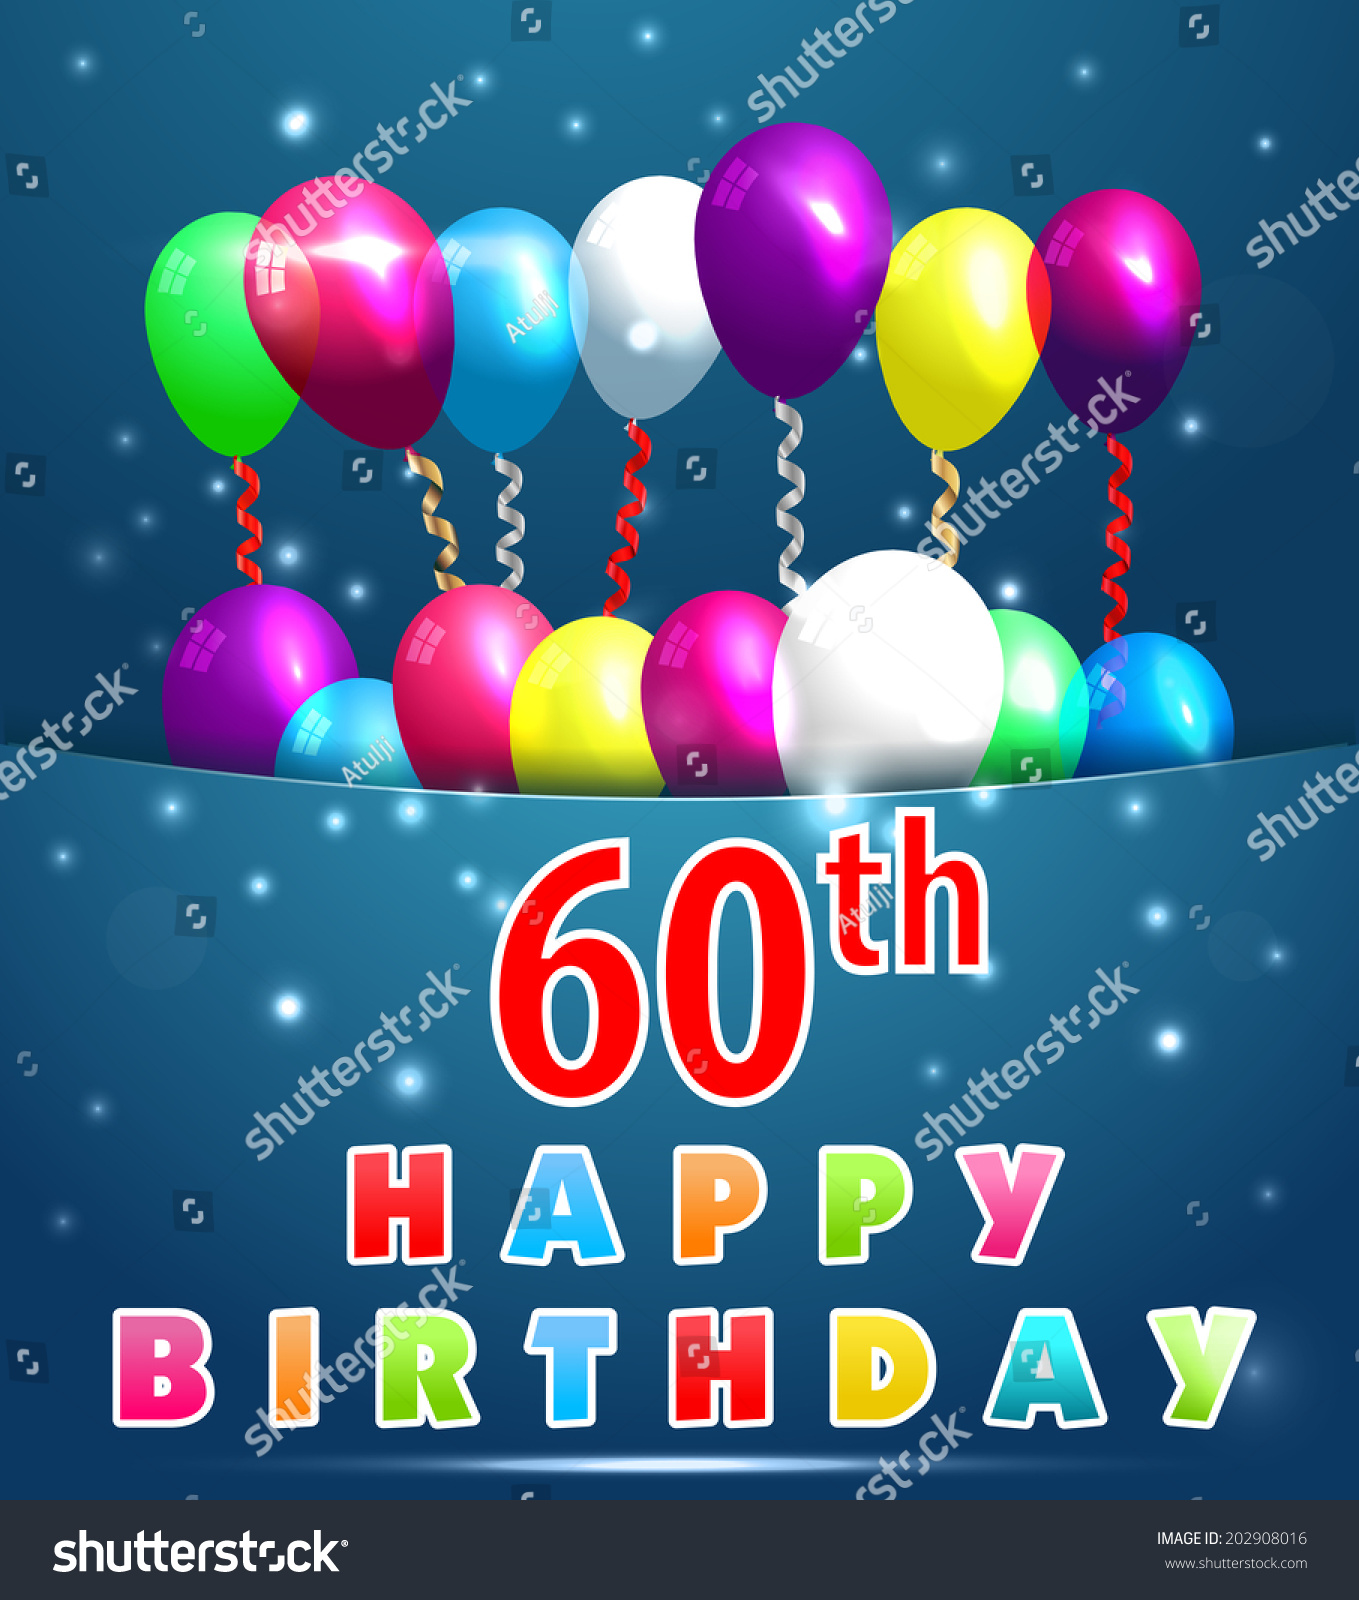 60 Year Happy Birthday Card Balloons Vector 202908016 – Happy 60th Birthday Greetings